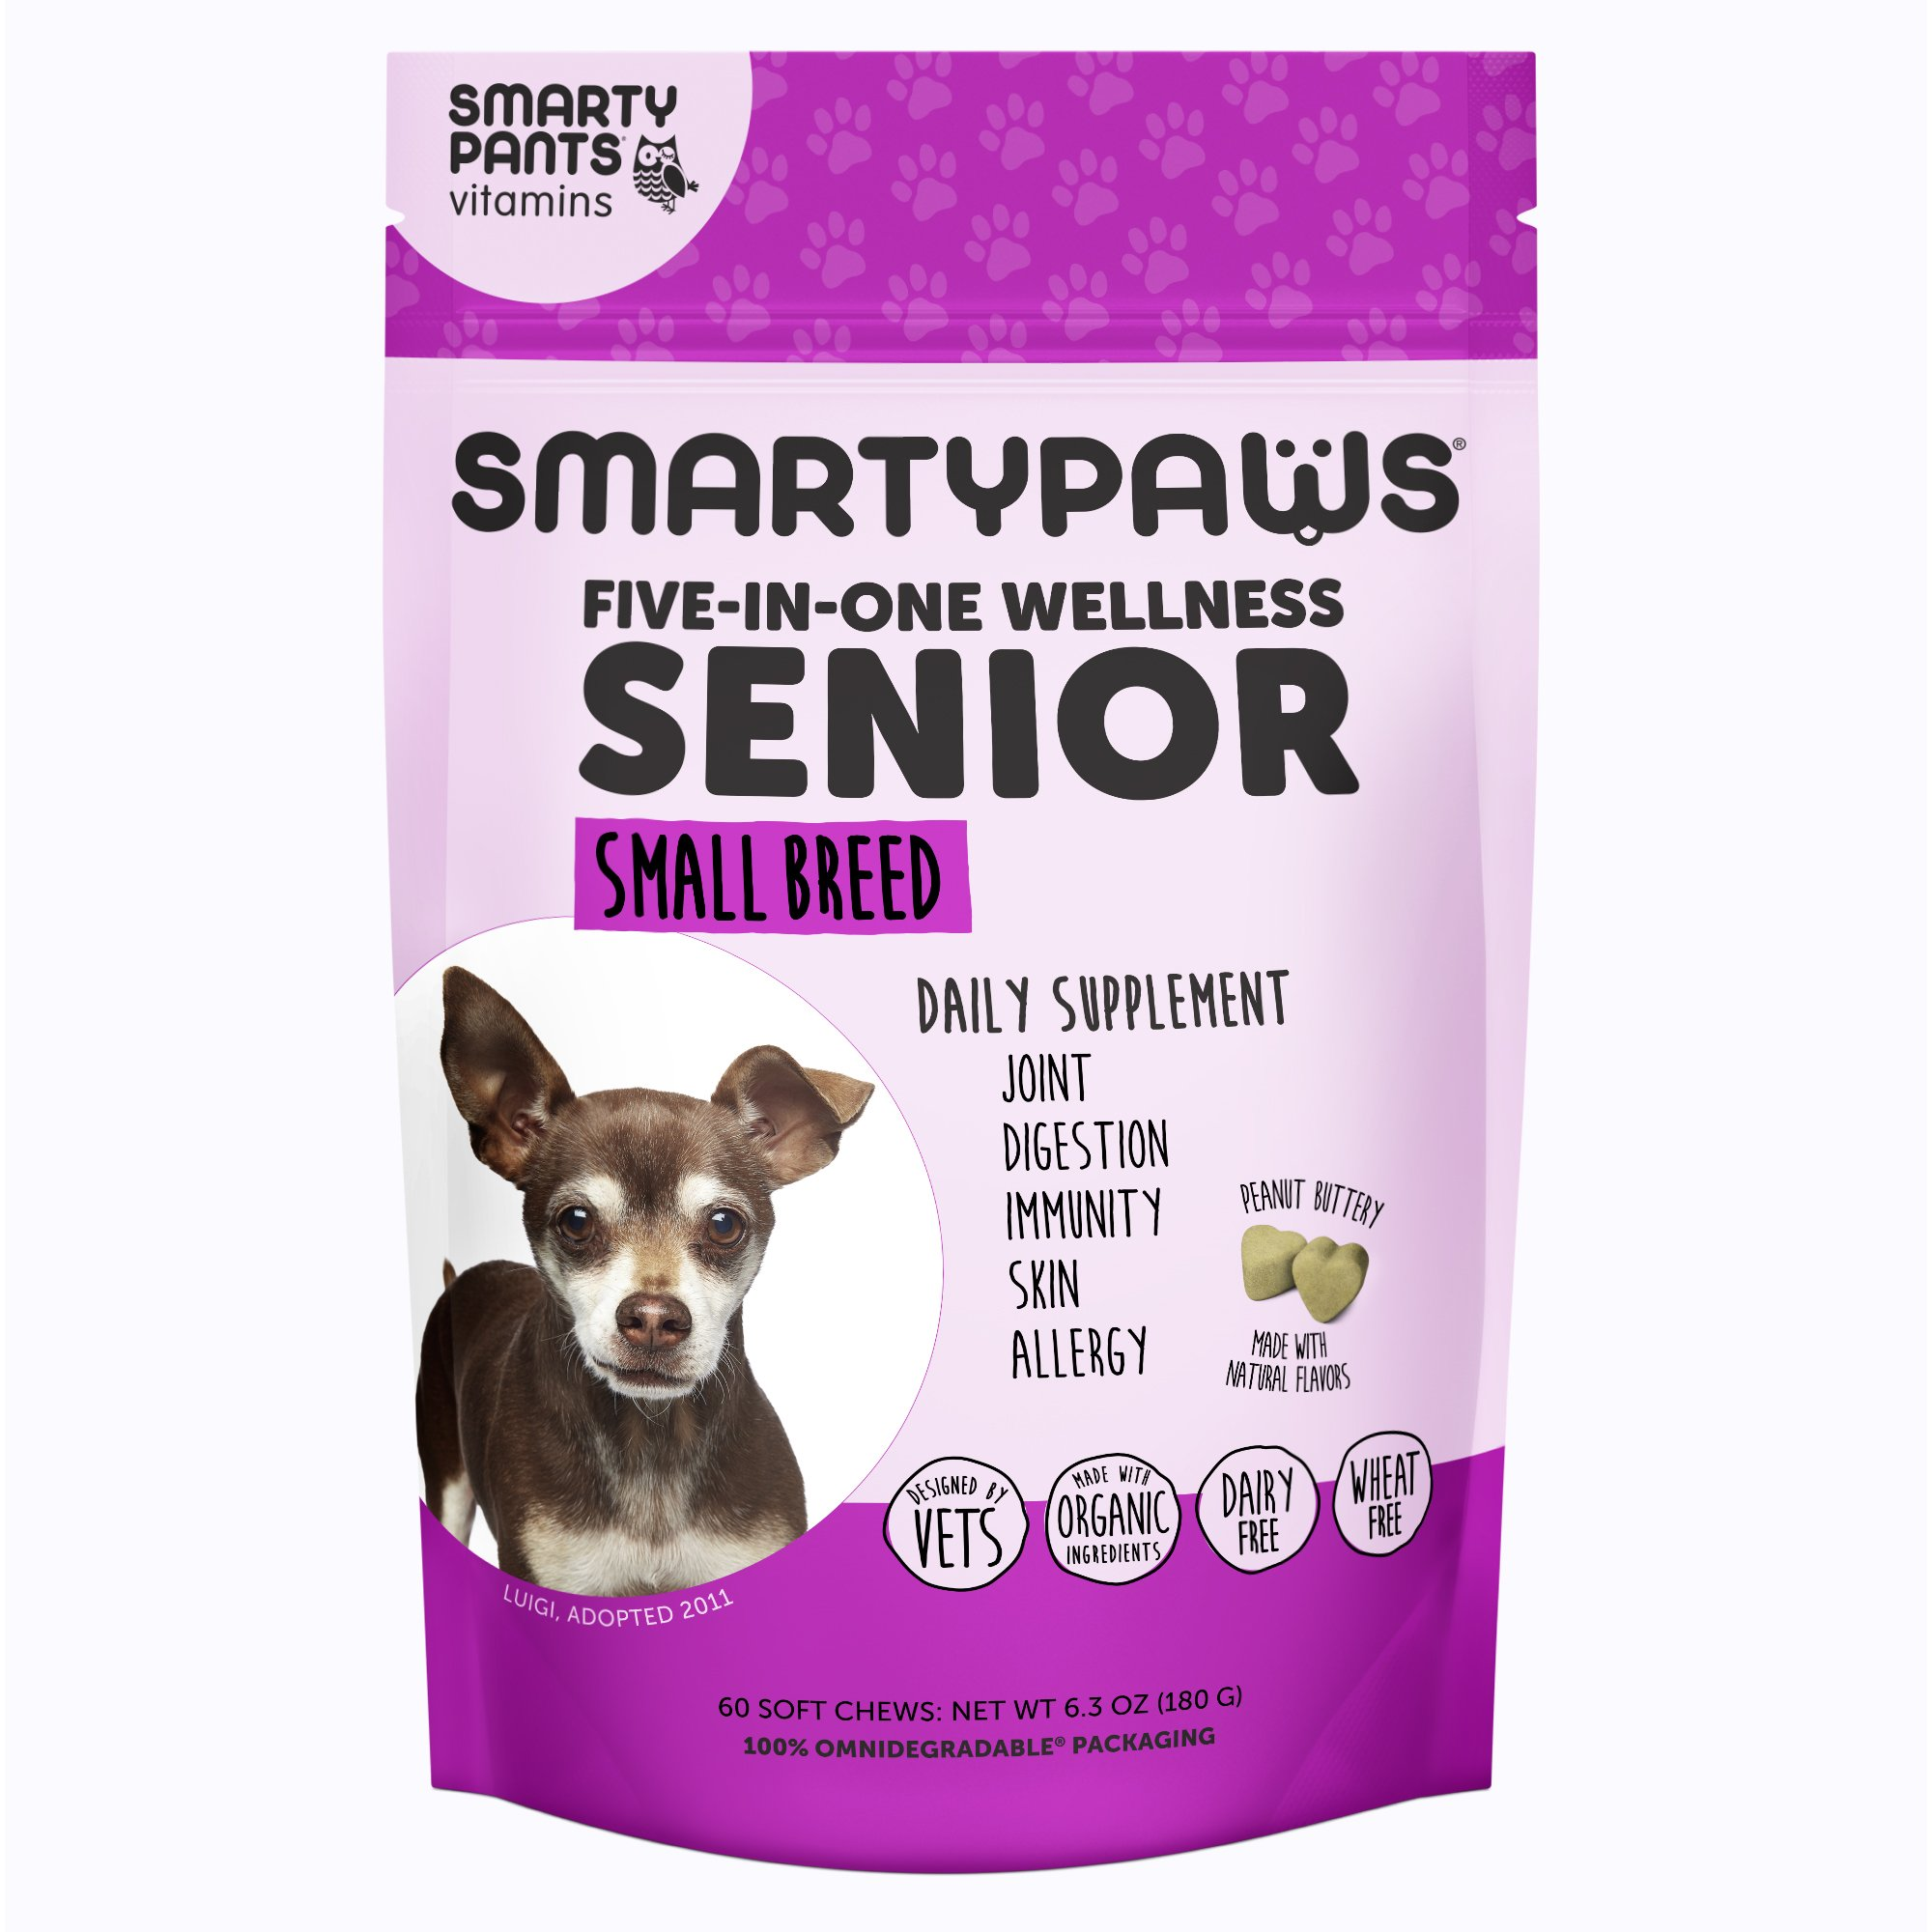 SmartyPants SmartyPaws Dog Supplement Chew- Glucosamine & Chondroitin + MSM for Joint Support, Fish Oil Omega 3 (EPA & DHA), Probiotics, Organic Turmeric: Senior Small Breed Vitamins - 60 ct